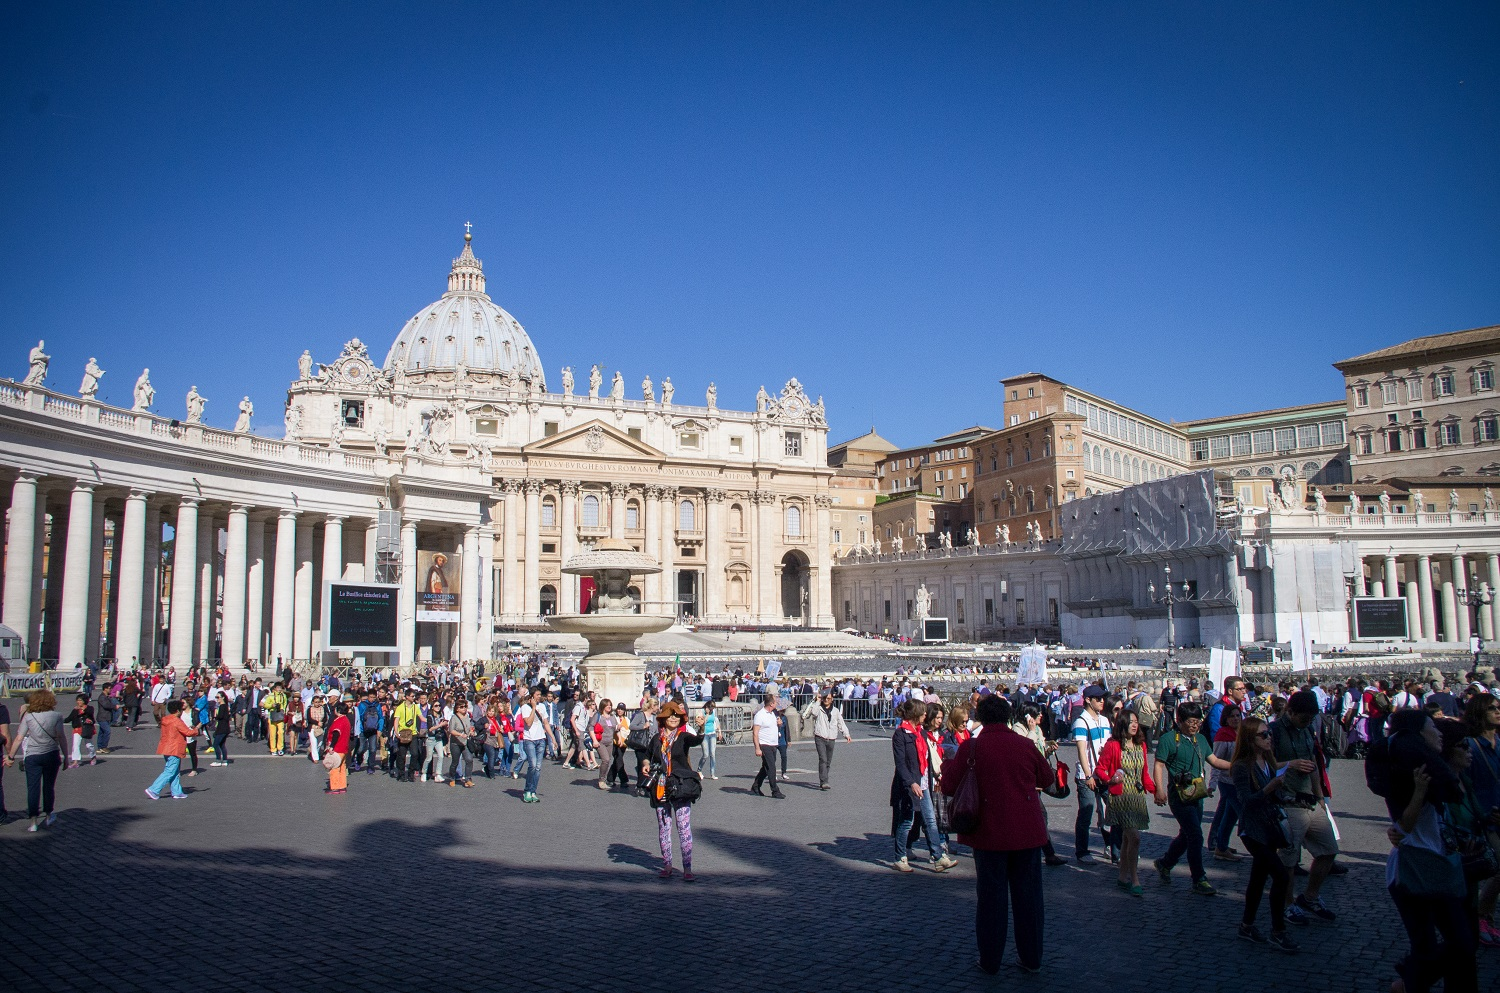 The Vatican with crowds during the day